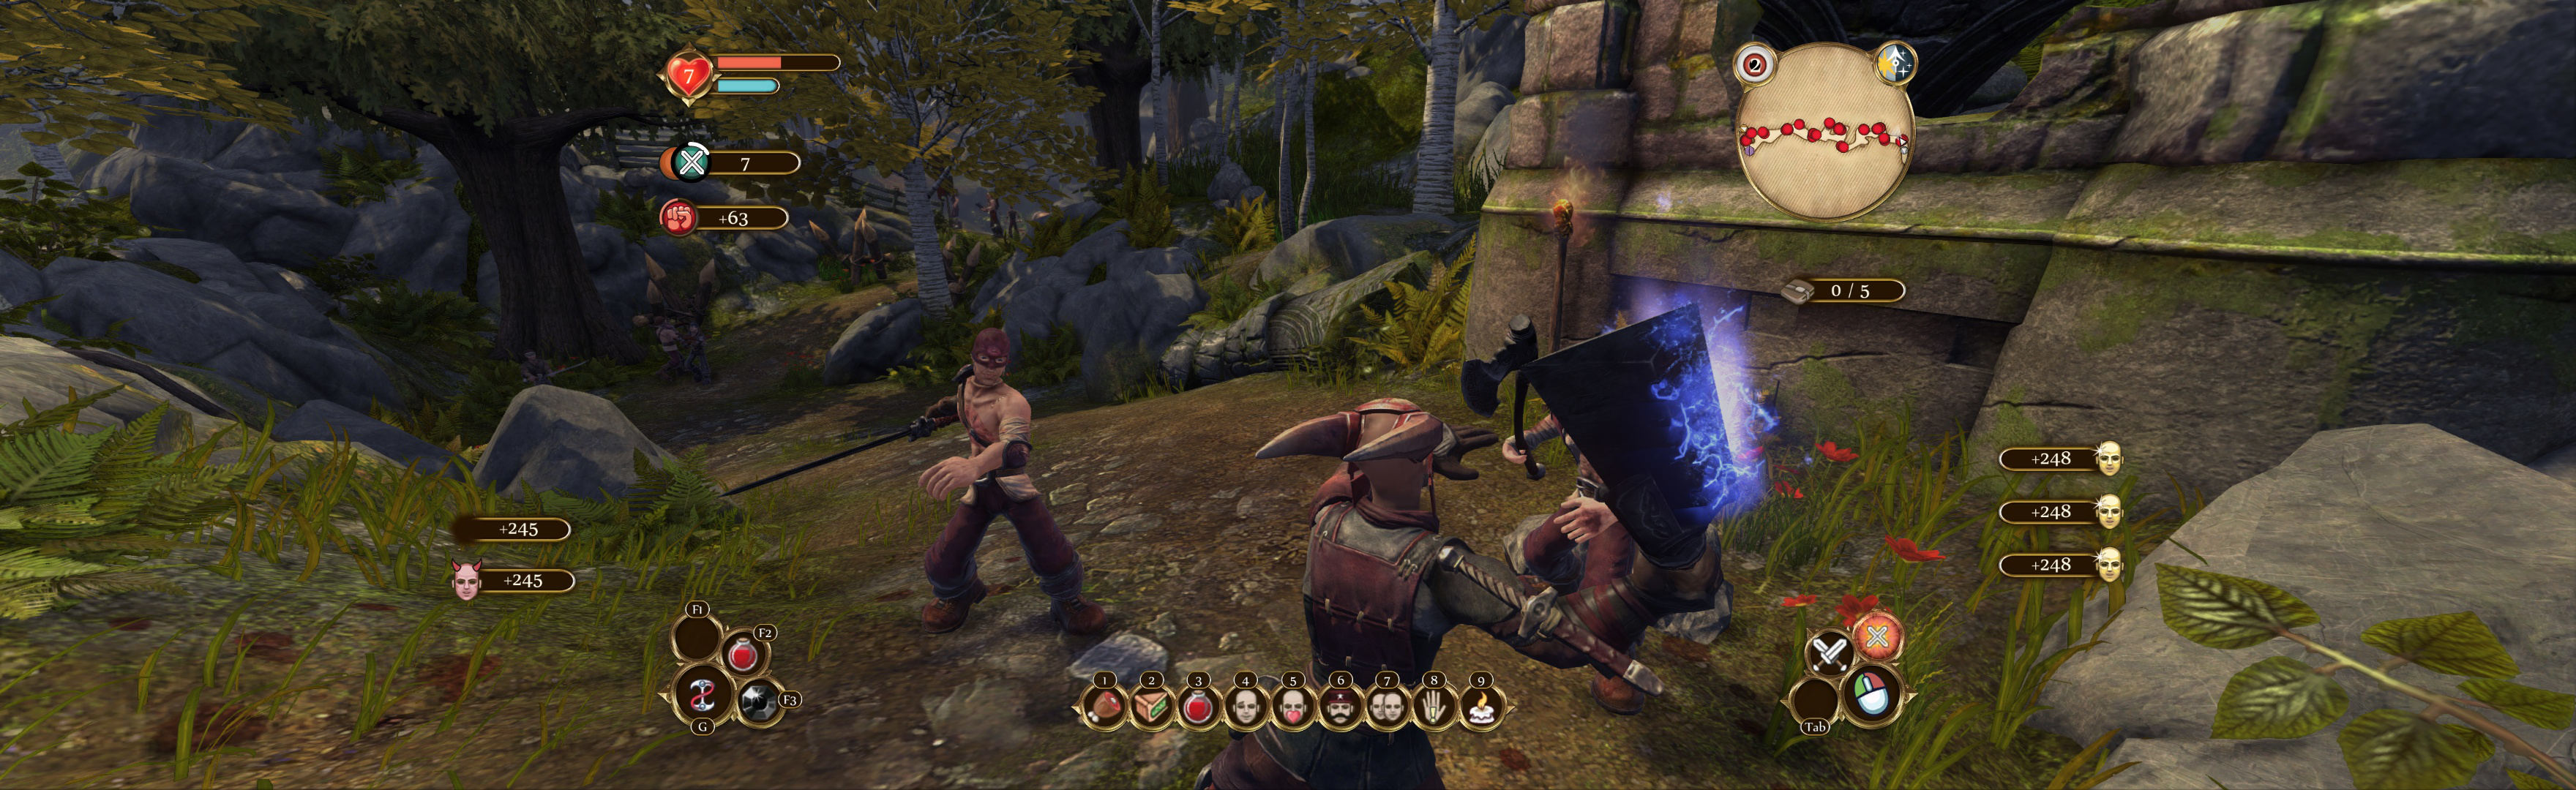 Fable Anniversary 2014 Manual PLP Instructions | WSGF